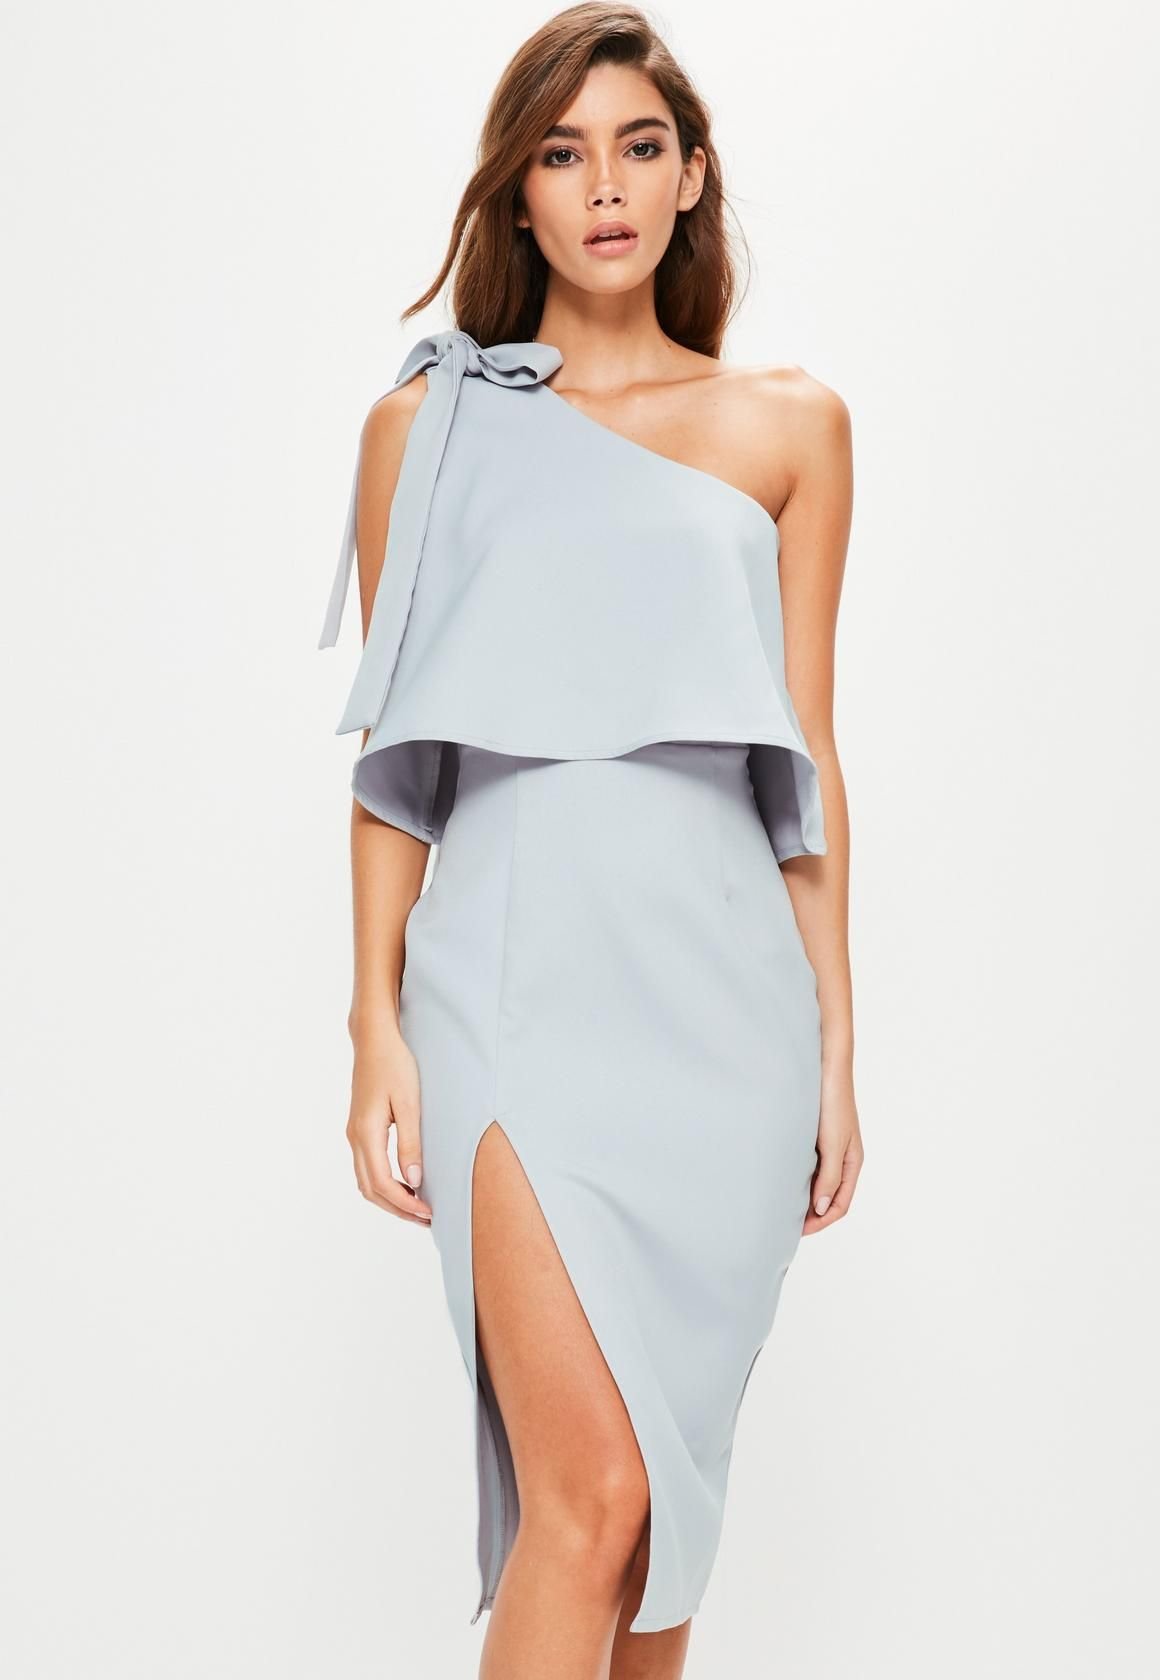 Tiered One Shoulder Midi Dress - White Missguided Buy Cheap Wholesale Price Clearance Pay With Paypal Discount Affordable Best Place nV2pOxA5T